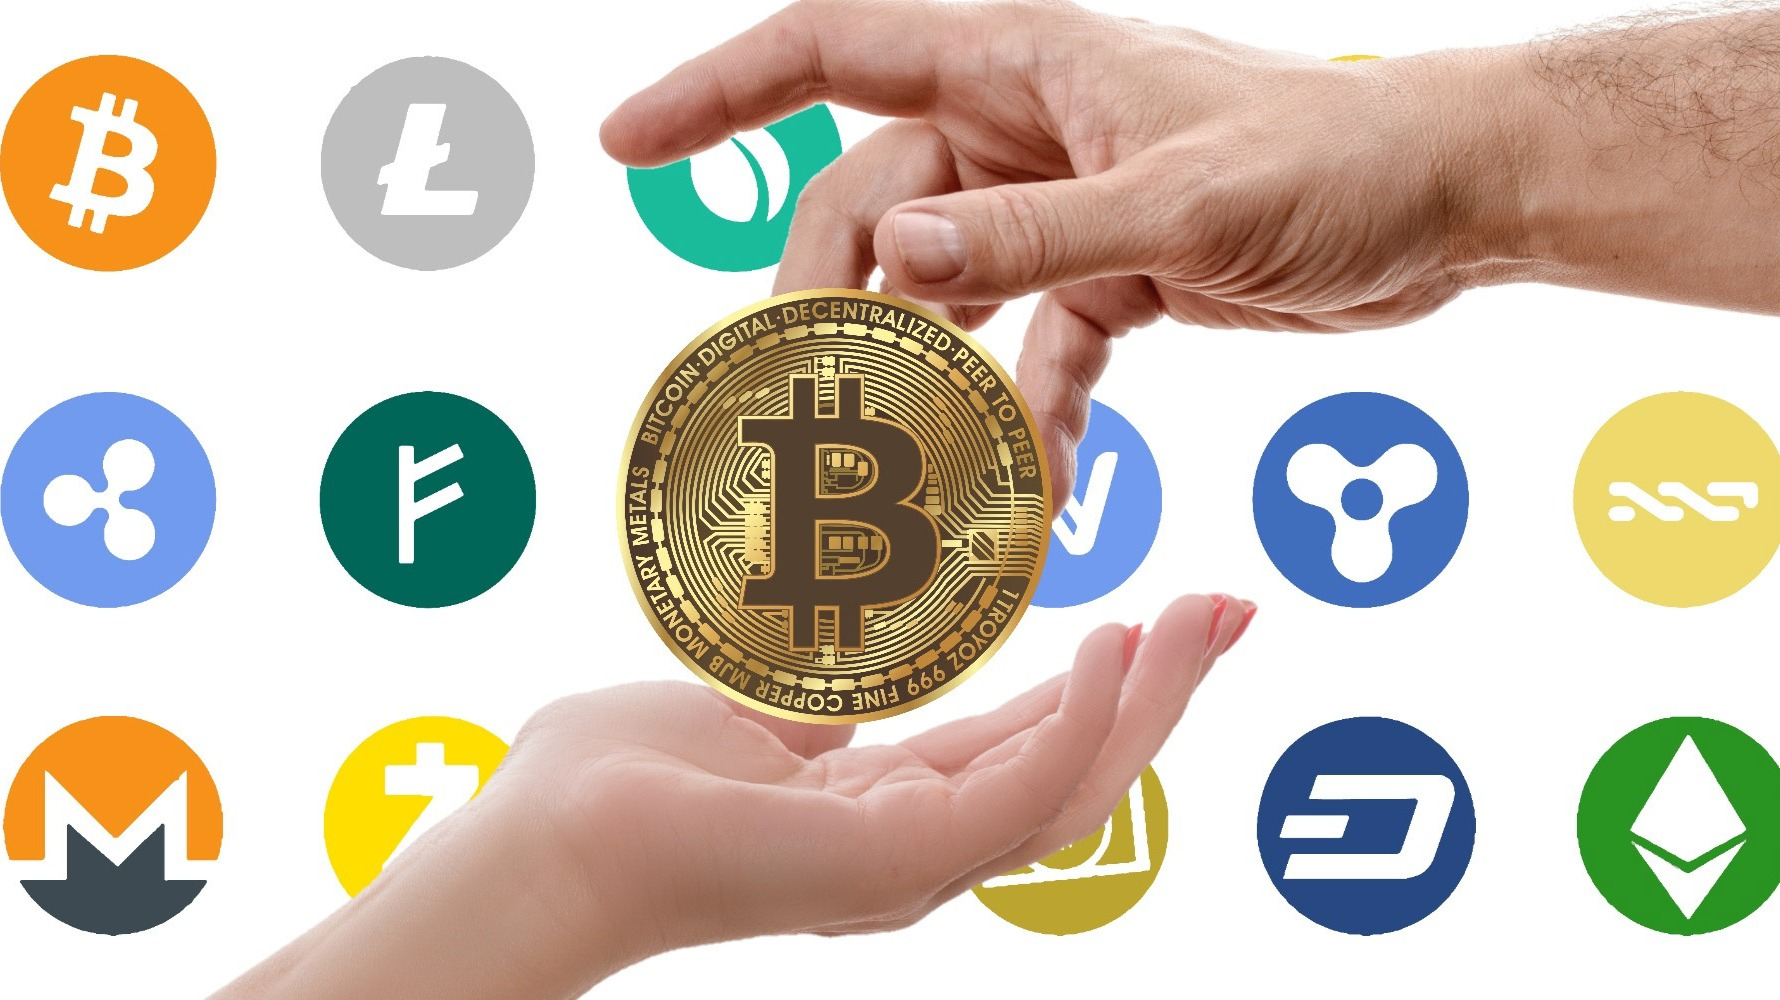 Top 5 cryptocurrencies you should adopt now